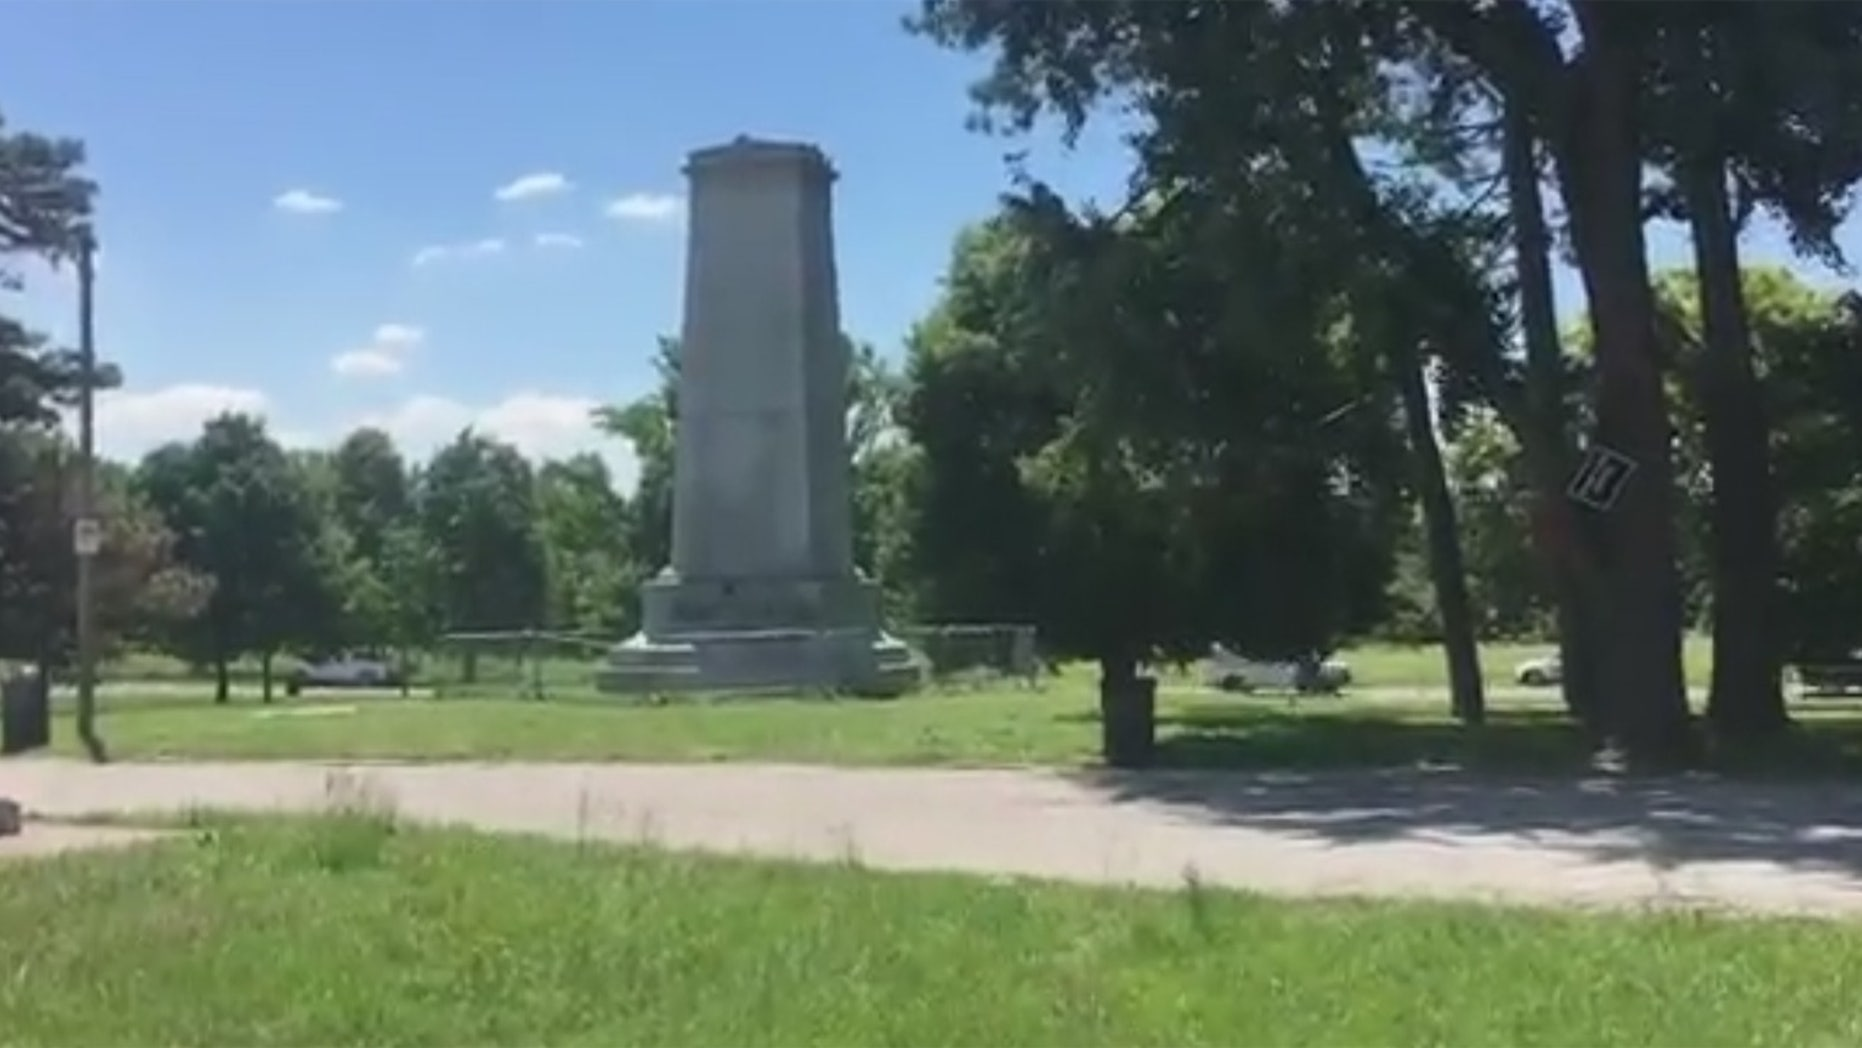 The Confederate monument was placed in the park in 1914 by the Daughters of the Confederacy.